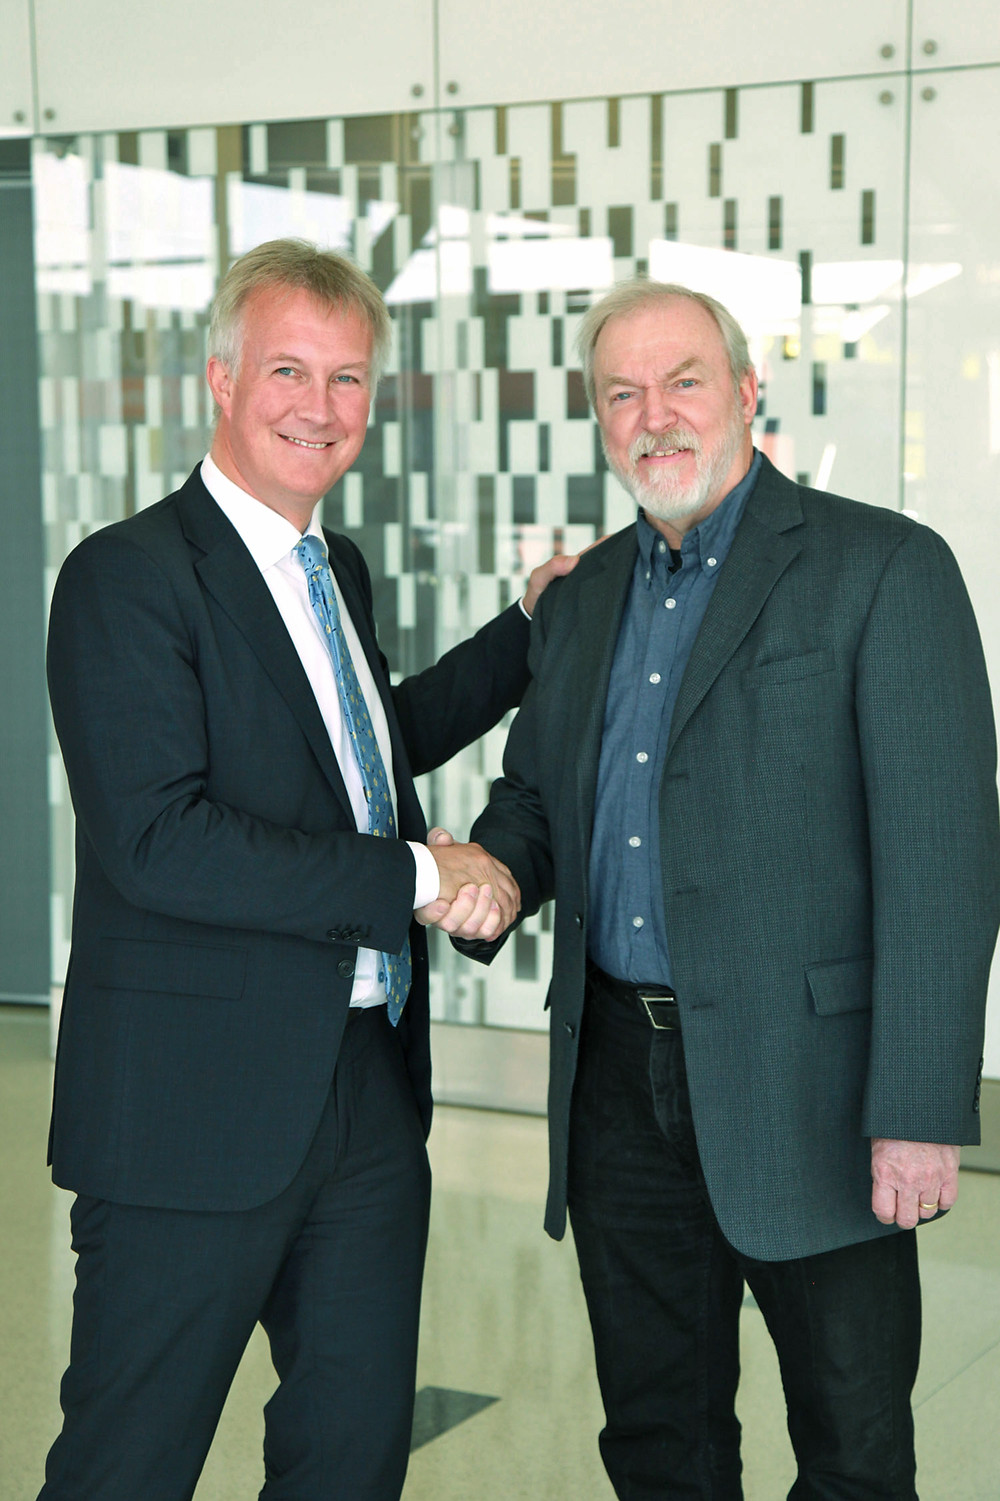 SA Catapult CEO Stuart Martin and TriSept CEO Rob Spicer seal the deal with a handshake. Photo Credit: Tom Deininger